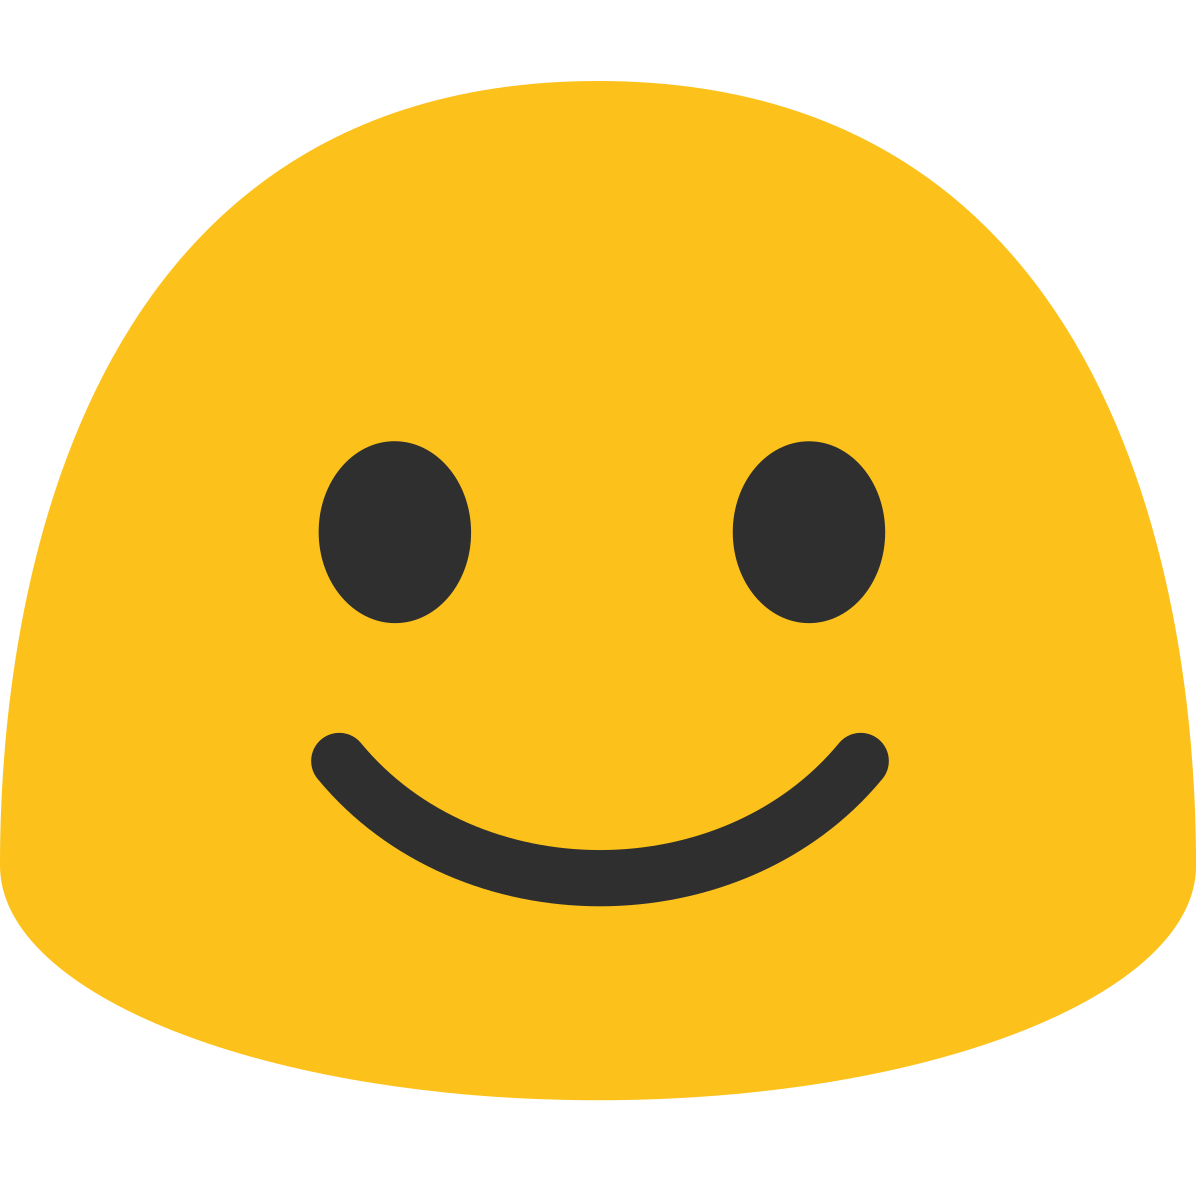 Emoji Smiley Emoticon.